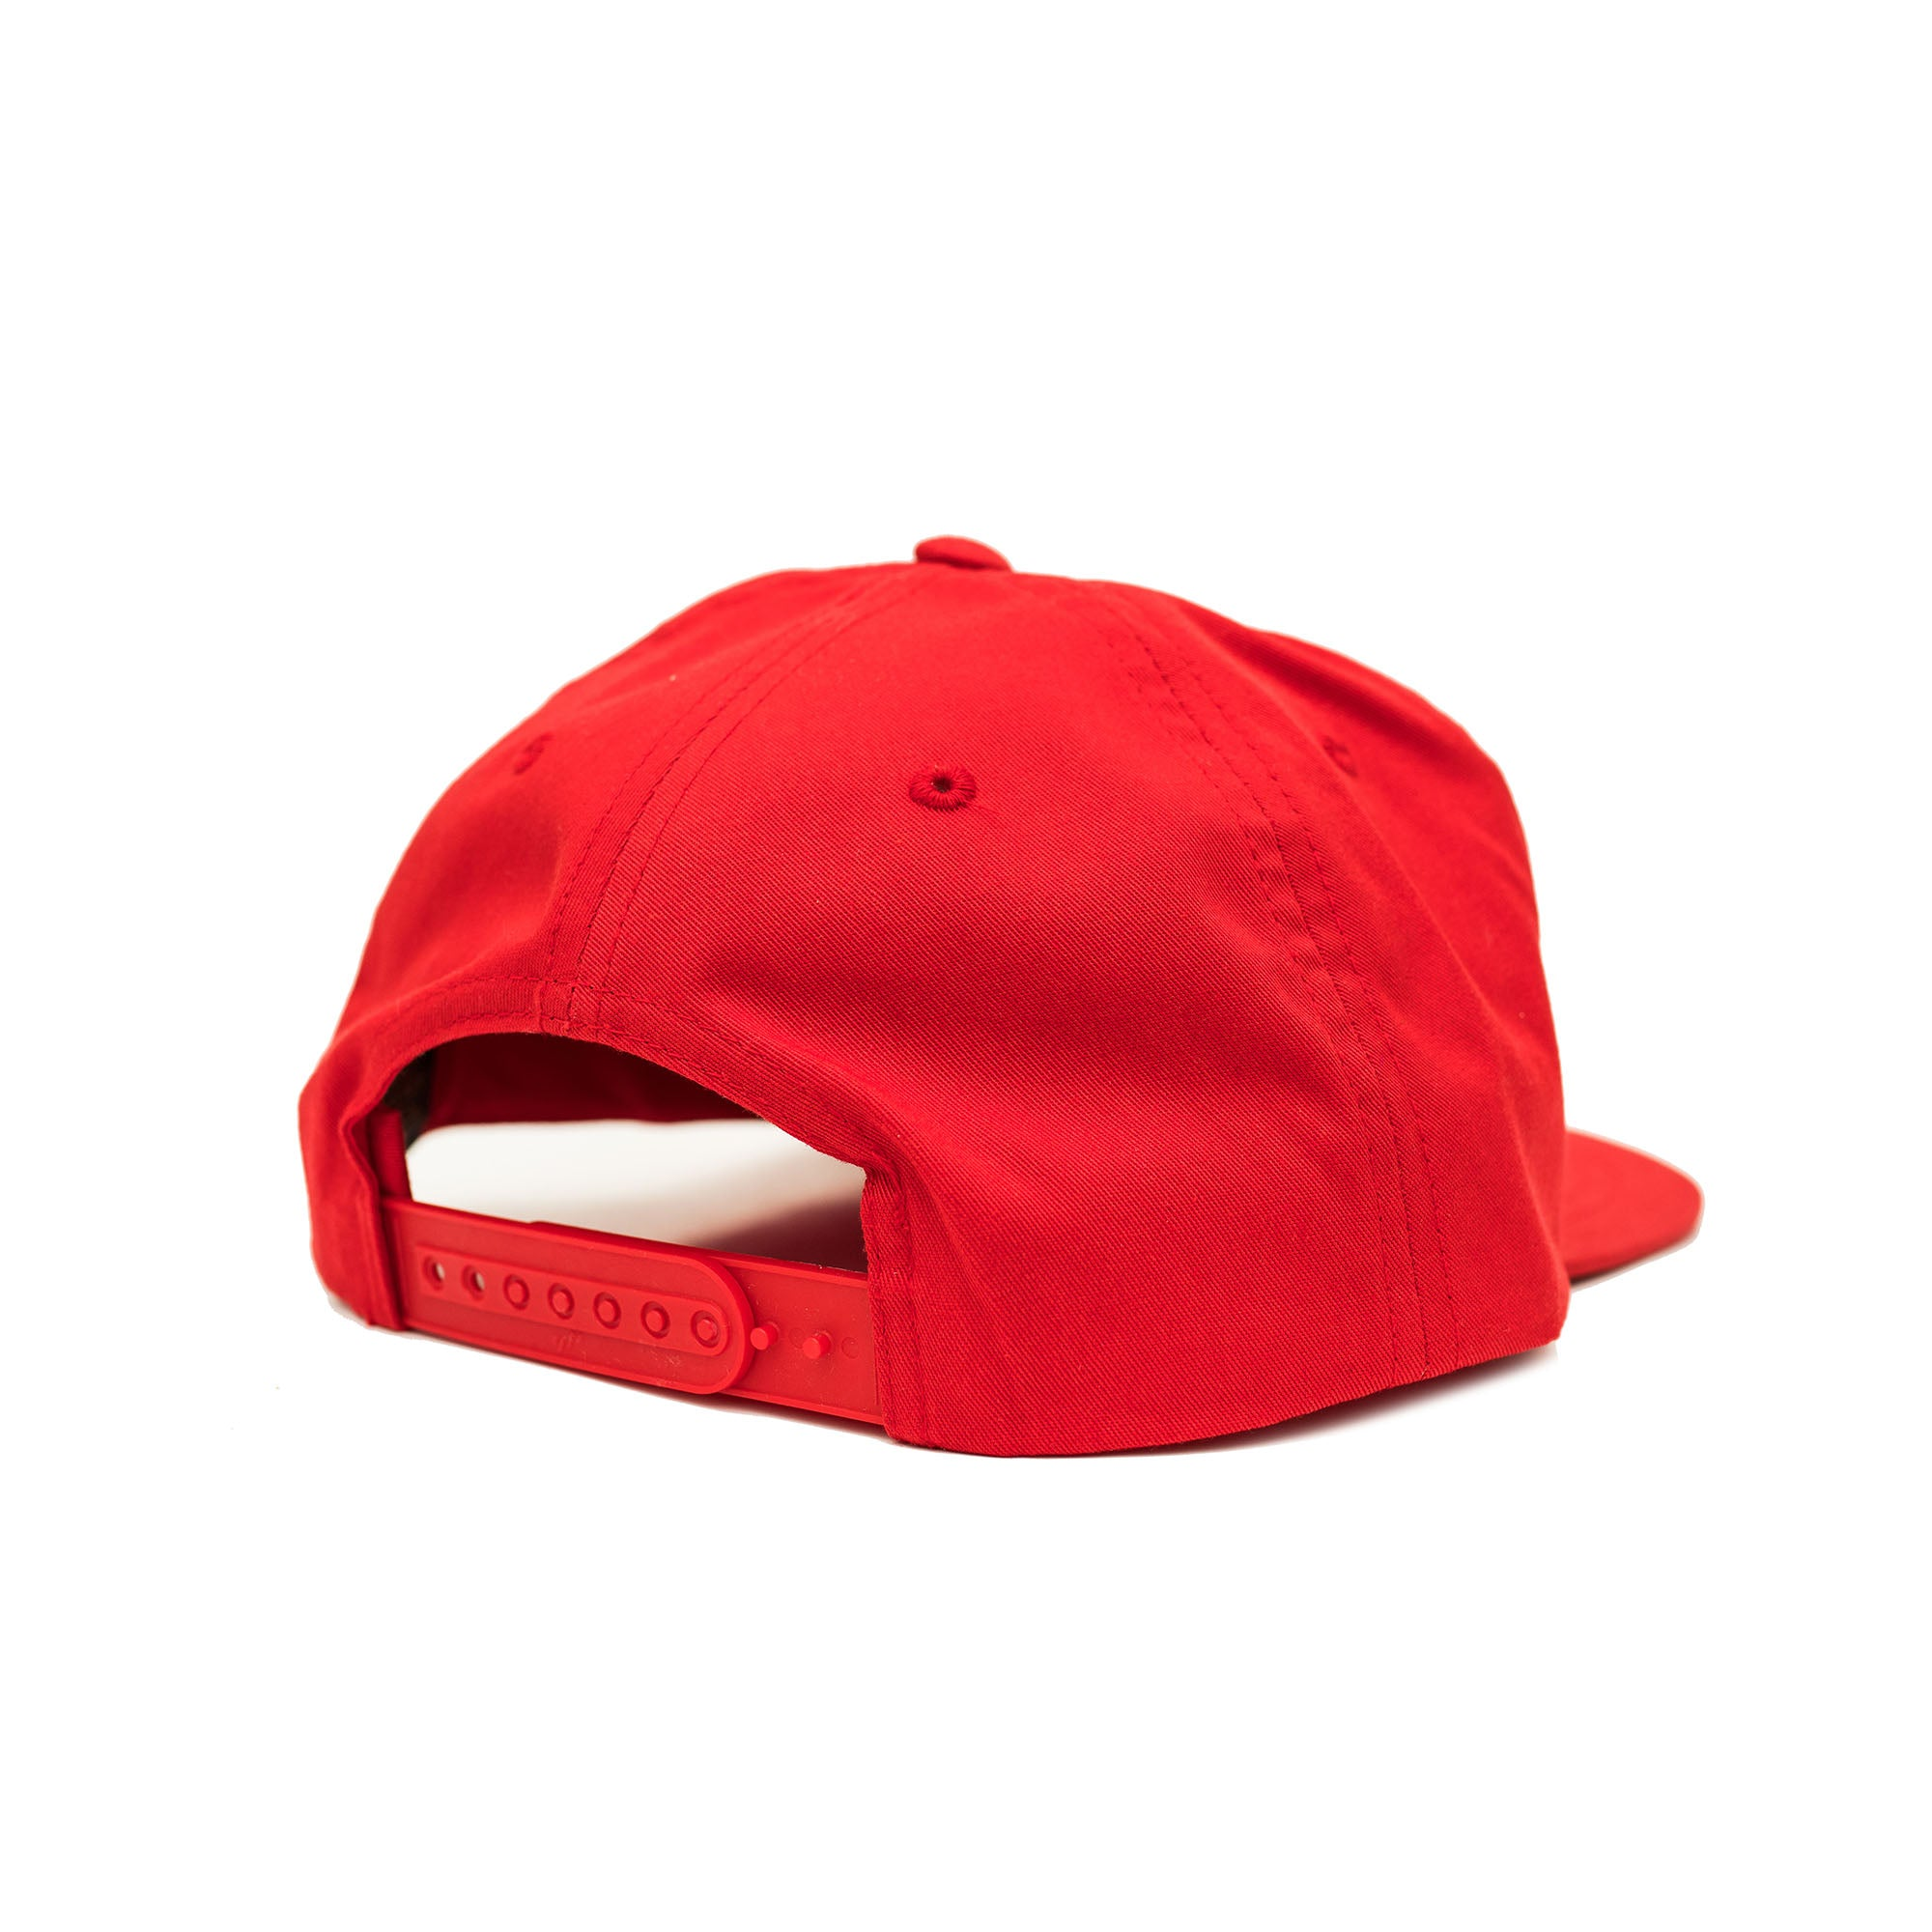 MATTY STARS UNSTRUCTRED 5 PANEL